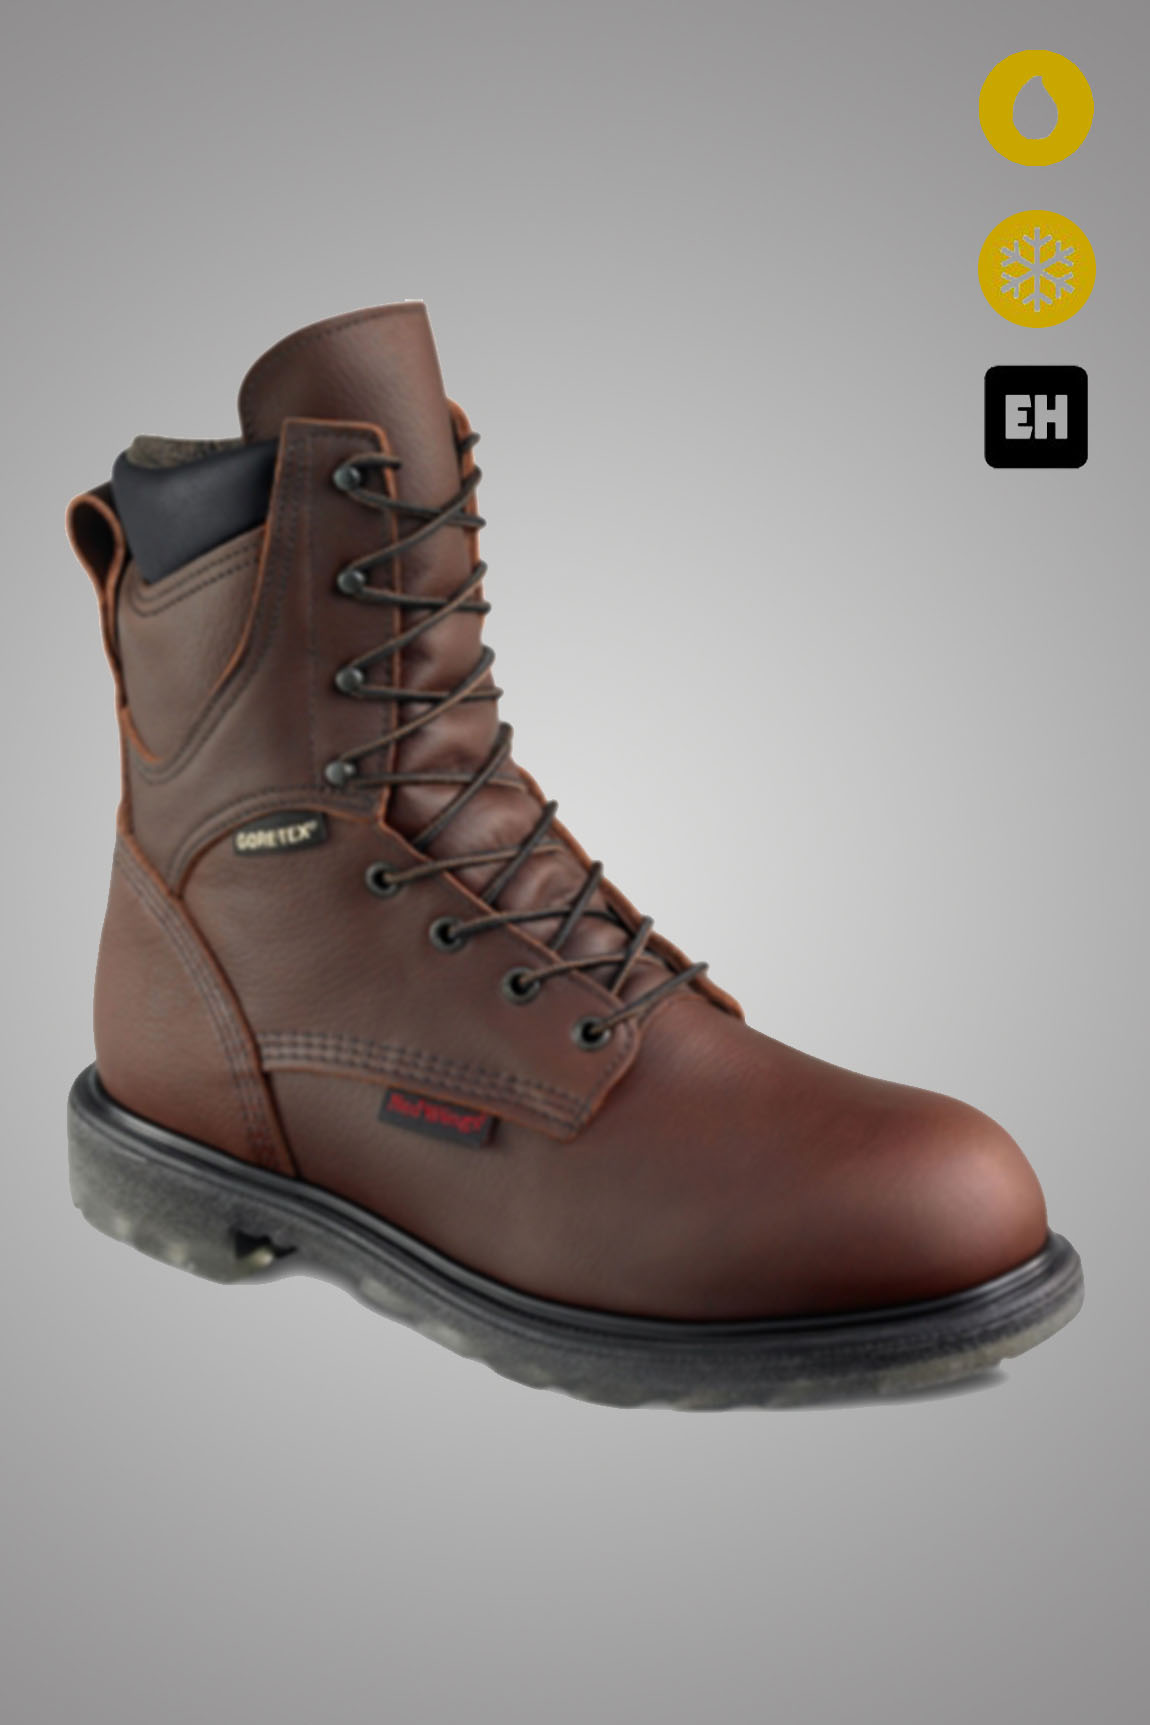 Red Wing 2412